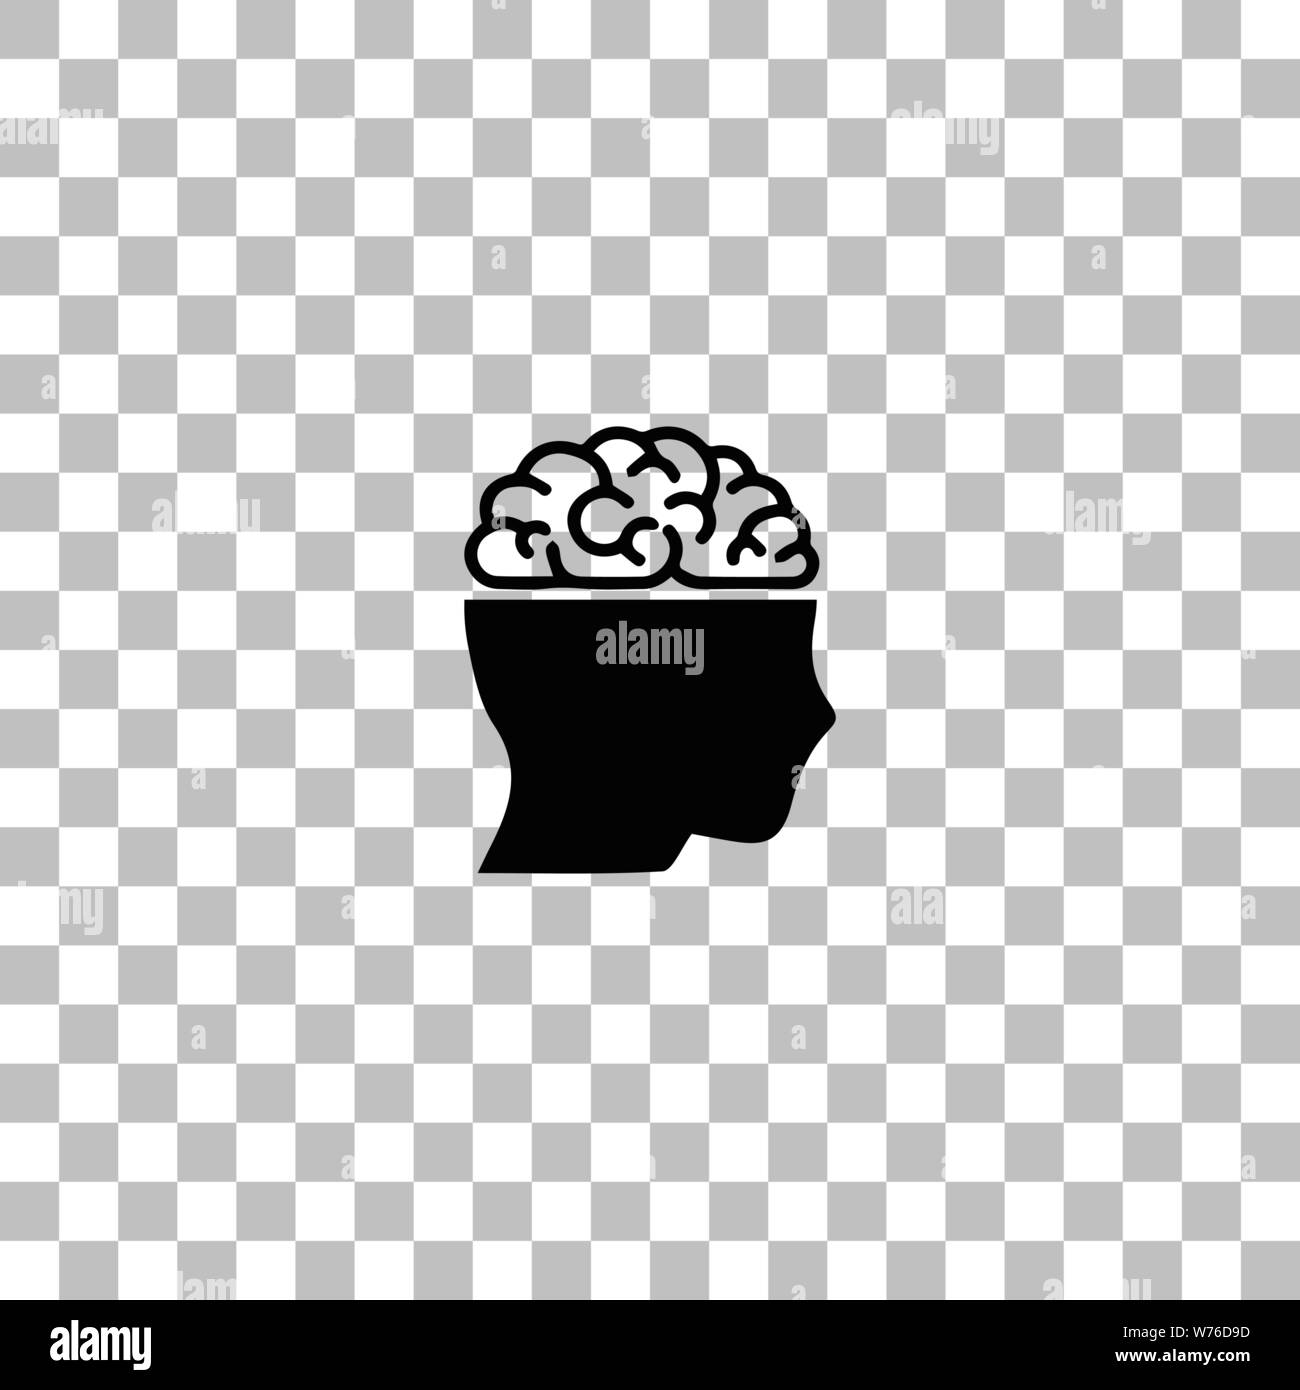 Human Brain Black Flat Icon On A Transparent Background Pictogram For Your Project Stock Vector Image Art Alamy Minion vector icon isolated on transparent background, minion lo. https www alamy com human brain black flat icon on a transparent background pictogram for your project image262600281 html